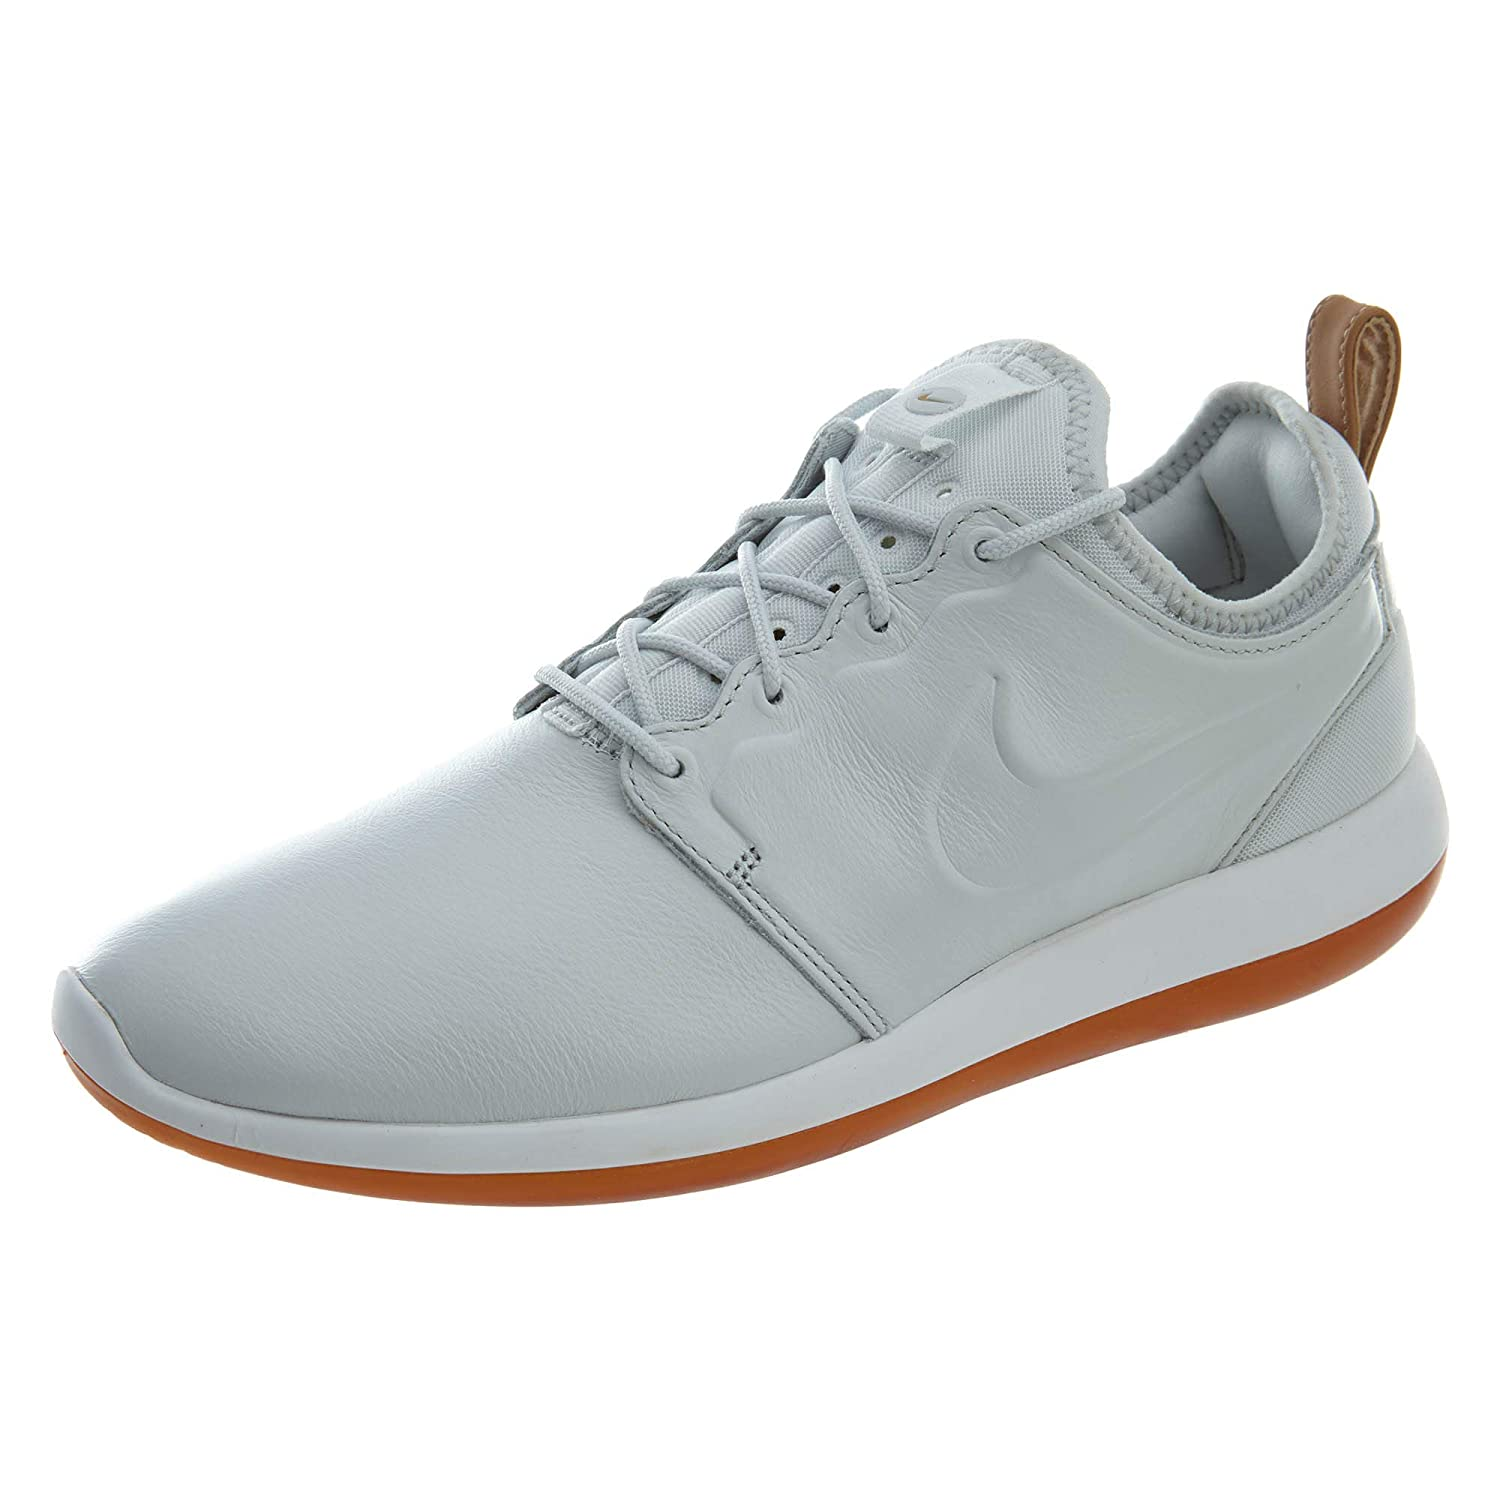 52fc3003e930d Nike Mens Roshe Two Leather Premium Shoes Off White White Gum 881987-100  Size 11.5  Amazon.co.uk  Shoes   Bags